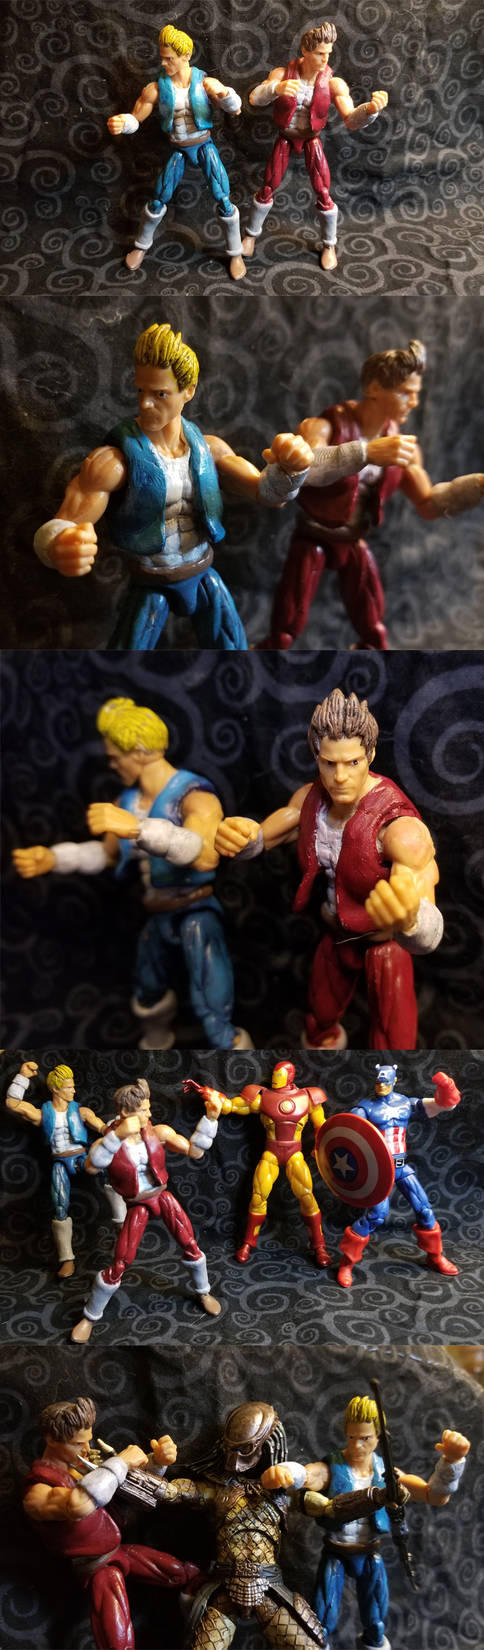 Double Dragon - Billy and Jimmy custom figures by hawanja